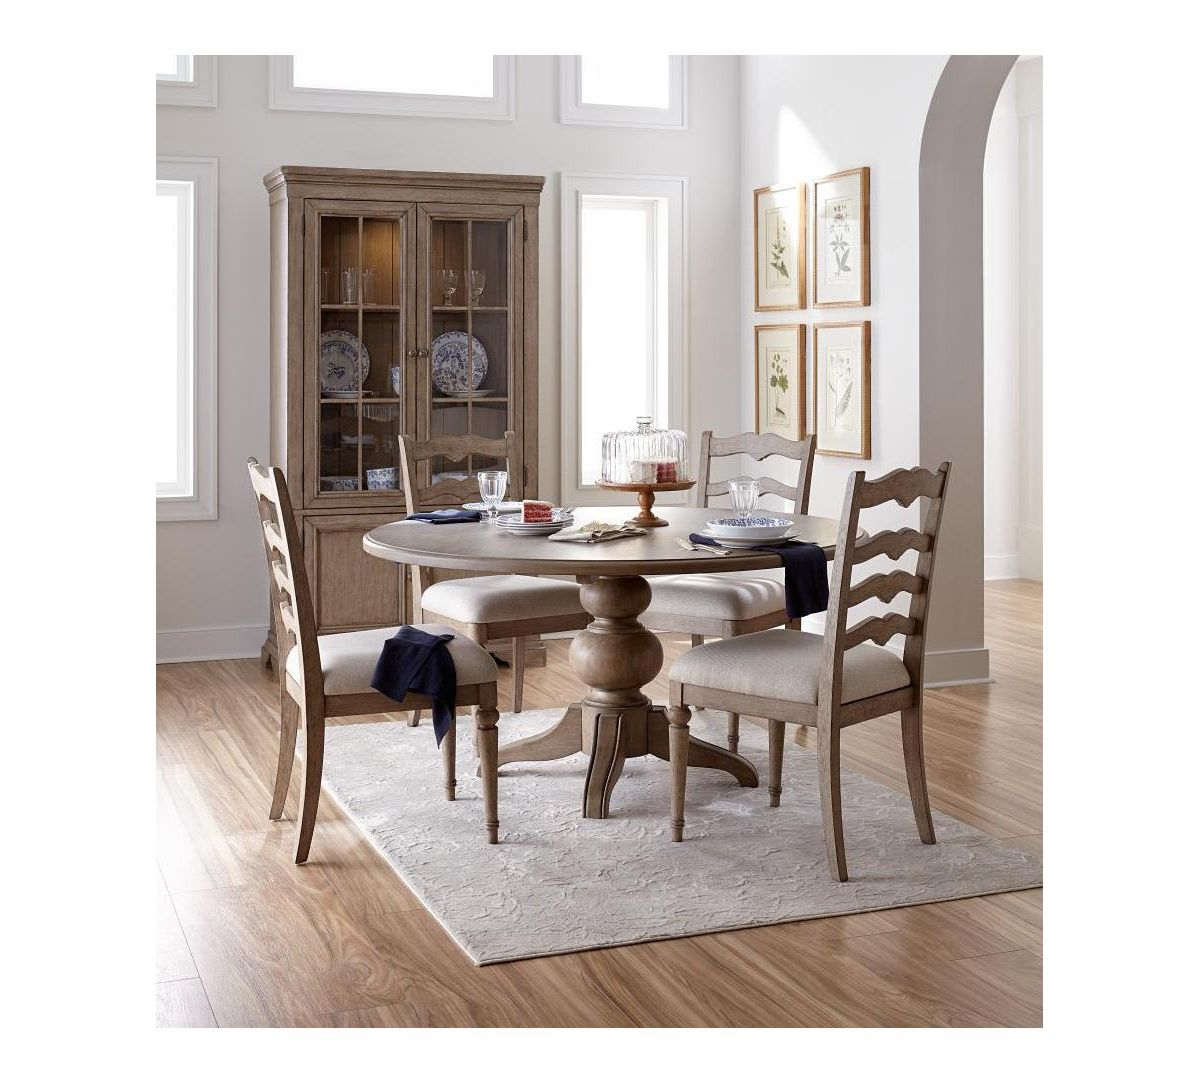 Ellan Round Dining Furniture 5 Pc Set Table 4 Side Chairs Created For Macy S Round Dining Dining Furniture Side Chairs